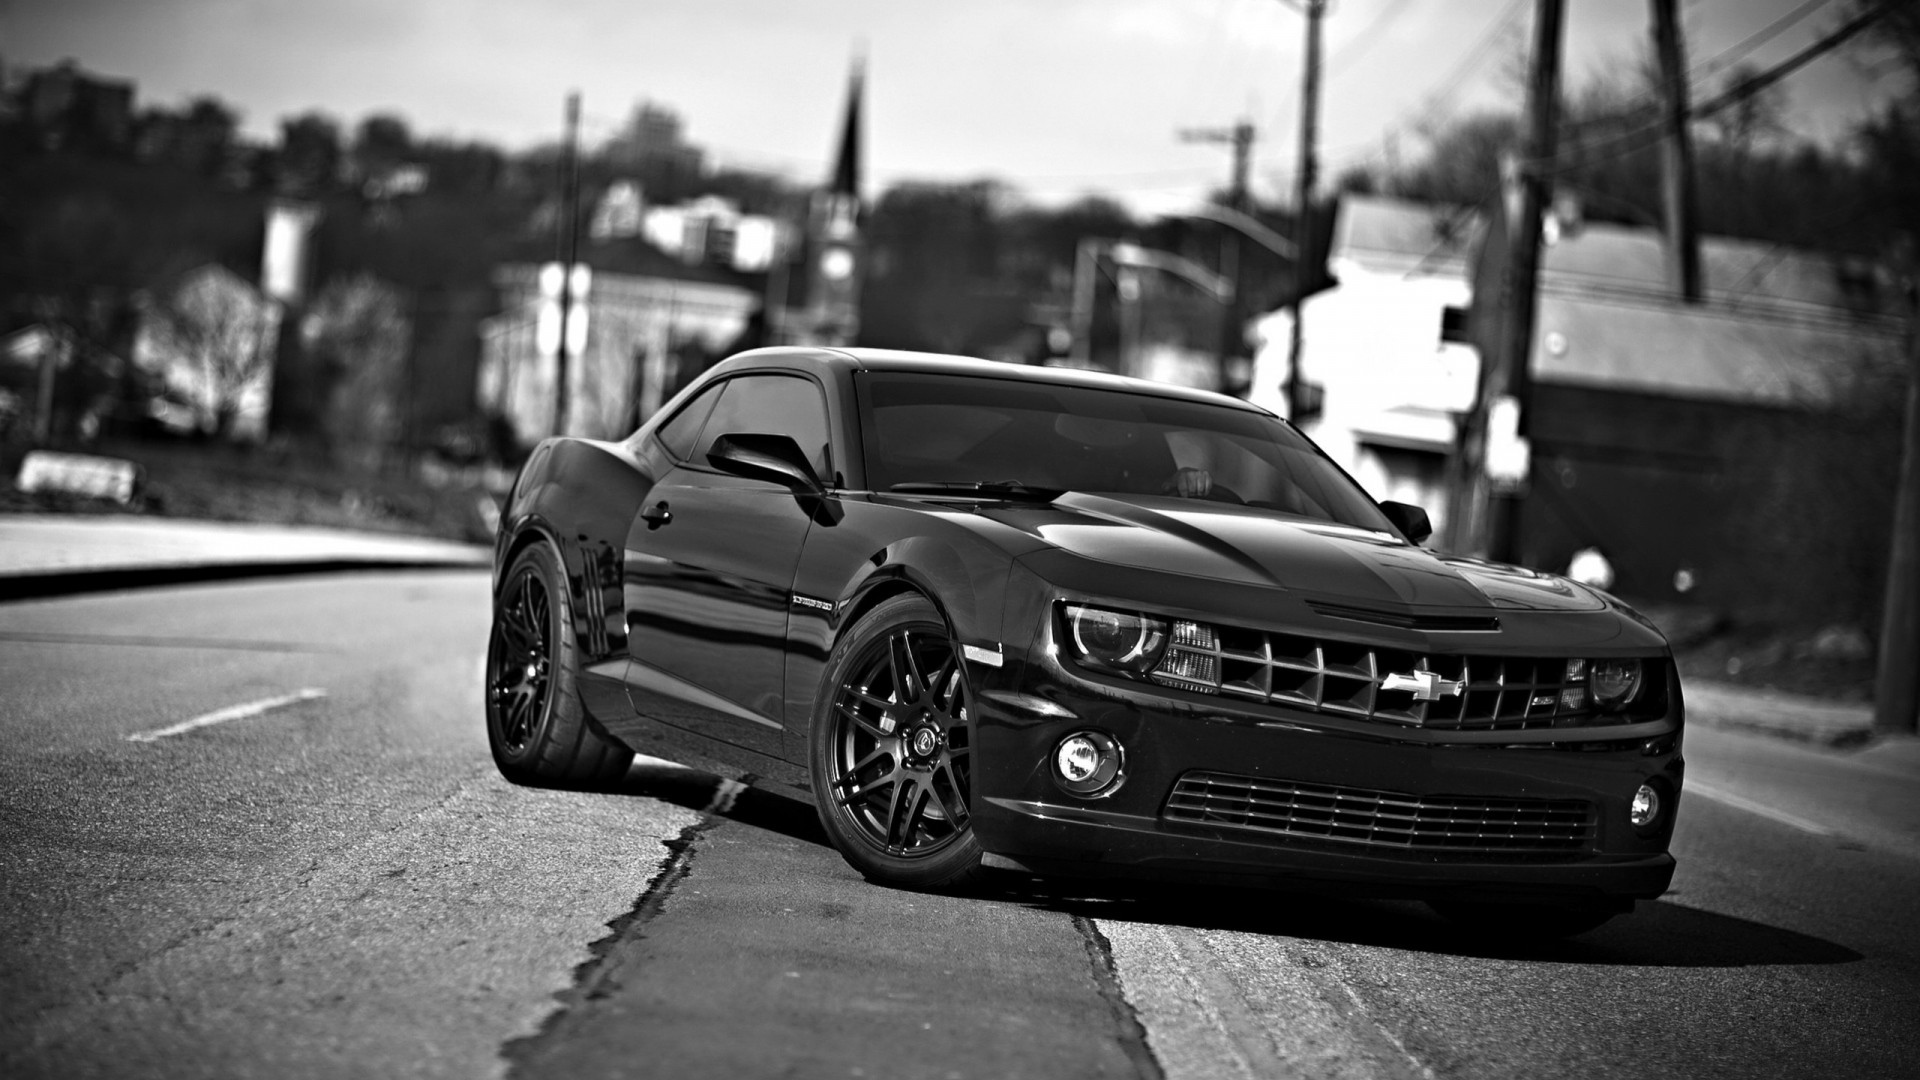 Preview wallpaper chevrolet camaro, chevrolet, cars, front view, black white  1920×1080